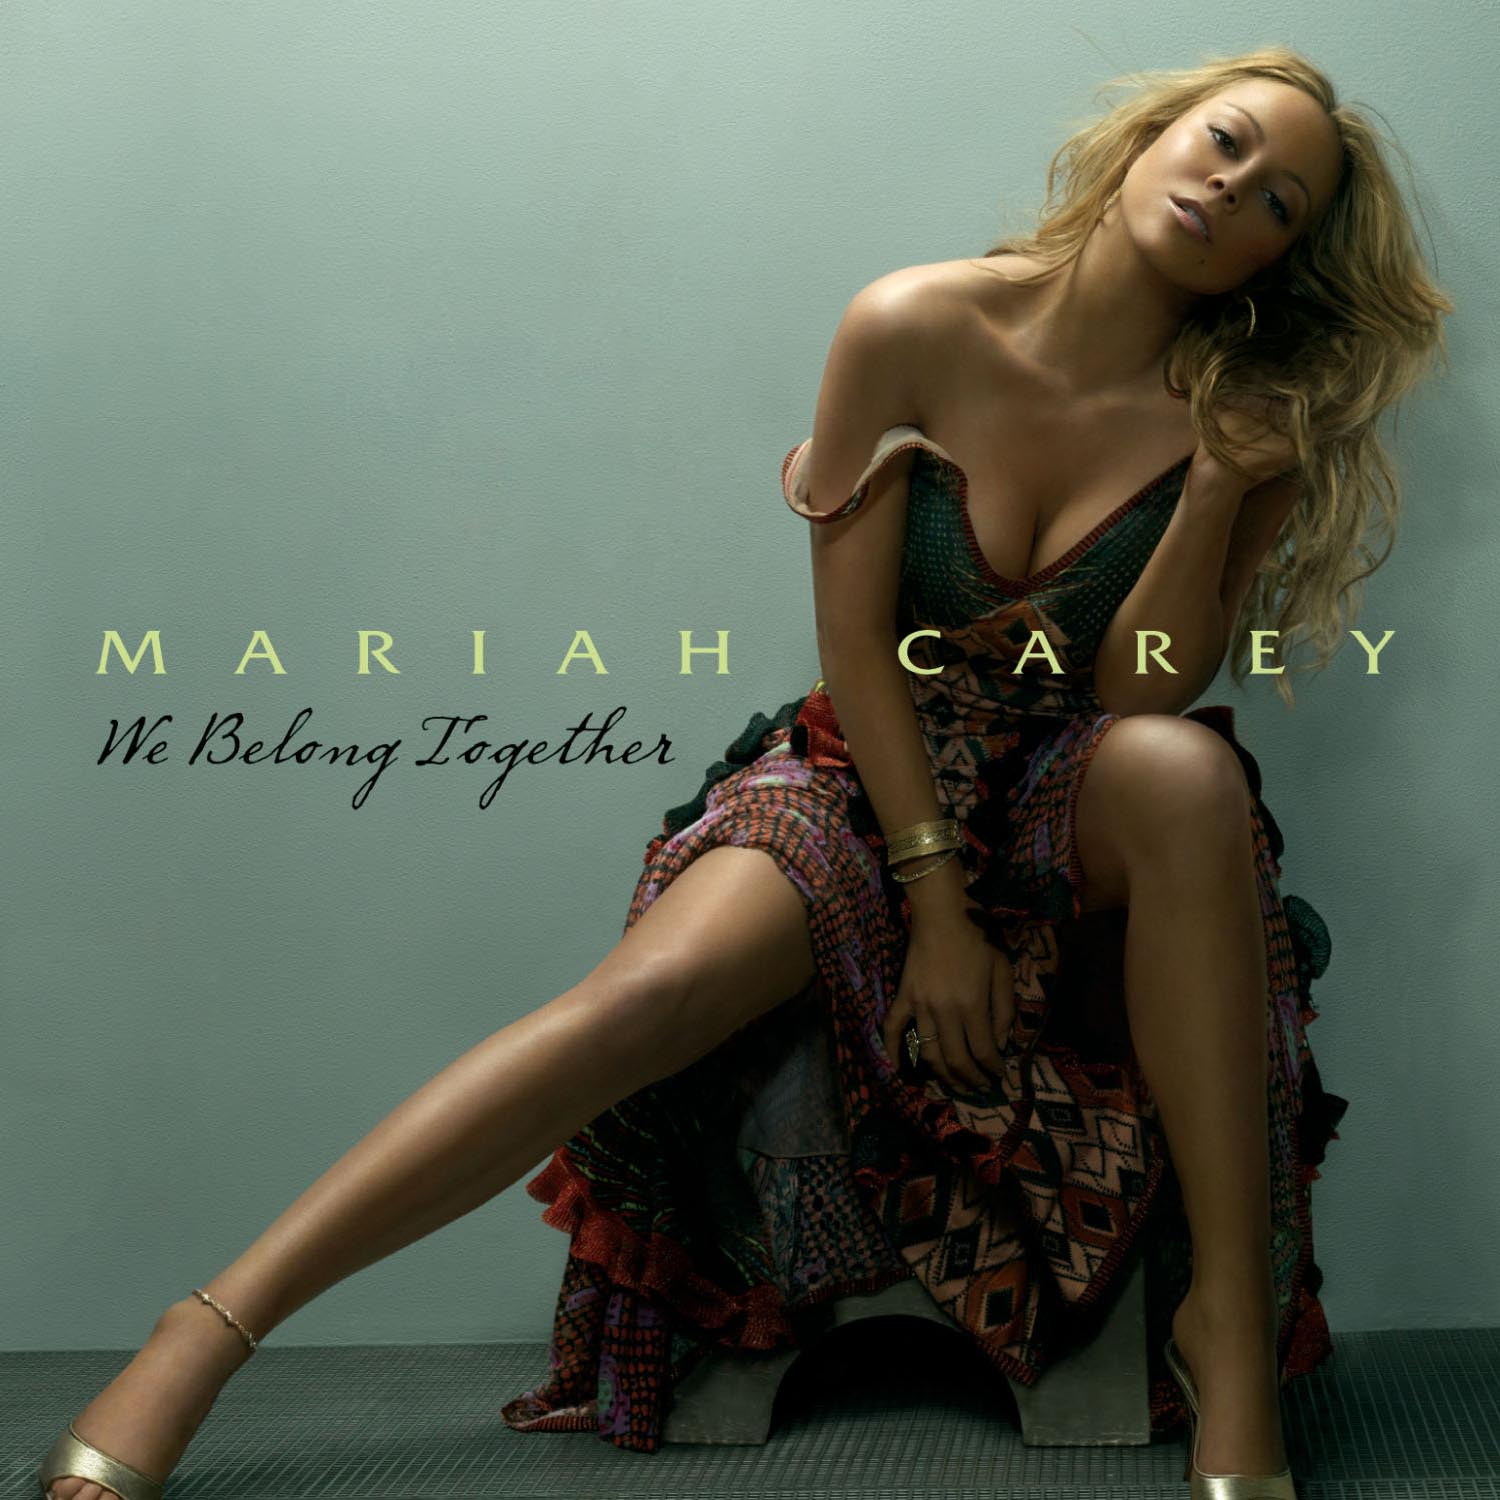 Even from the demo, I really felt something special - - Mariah Carey